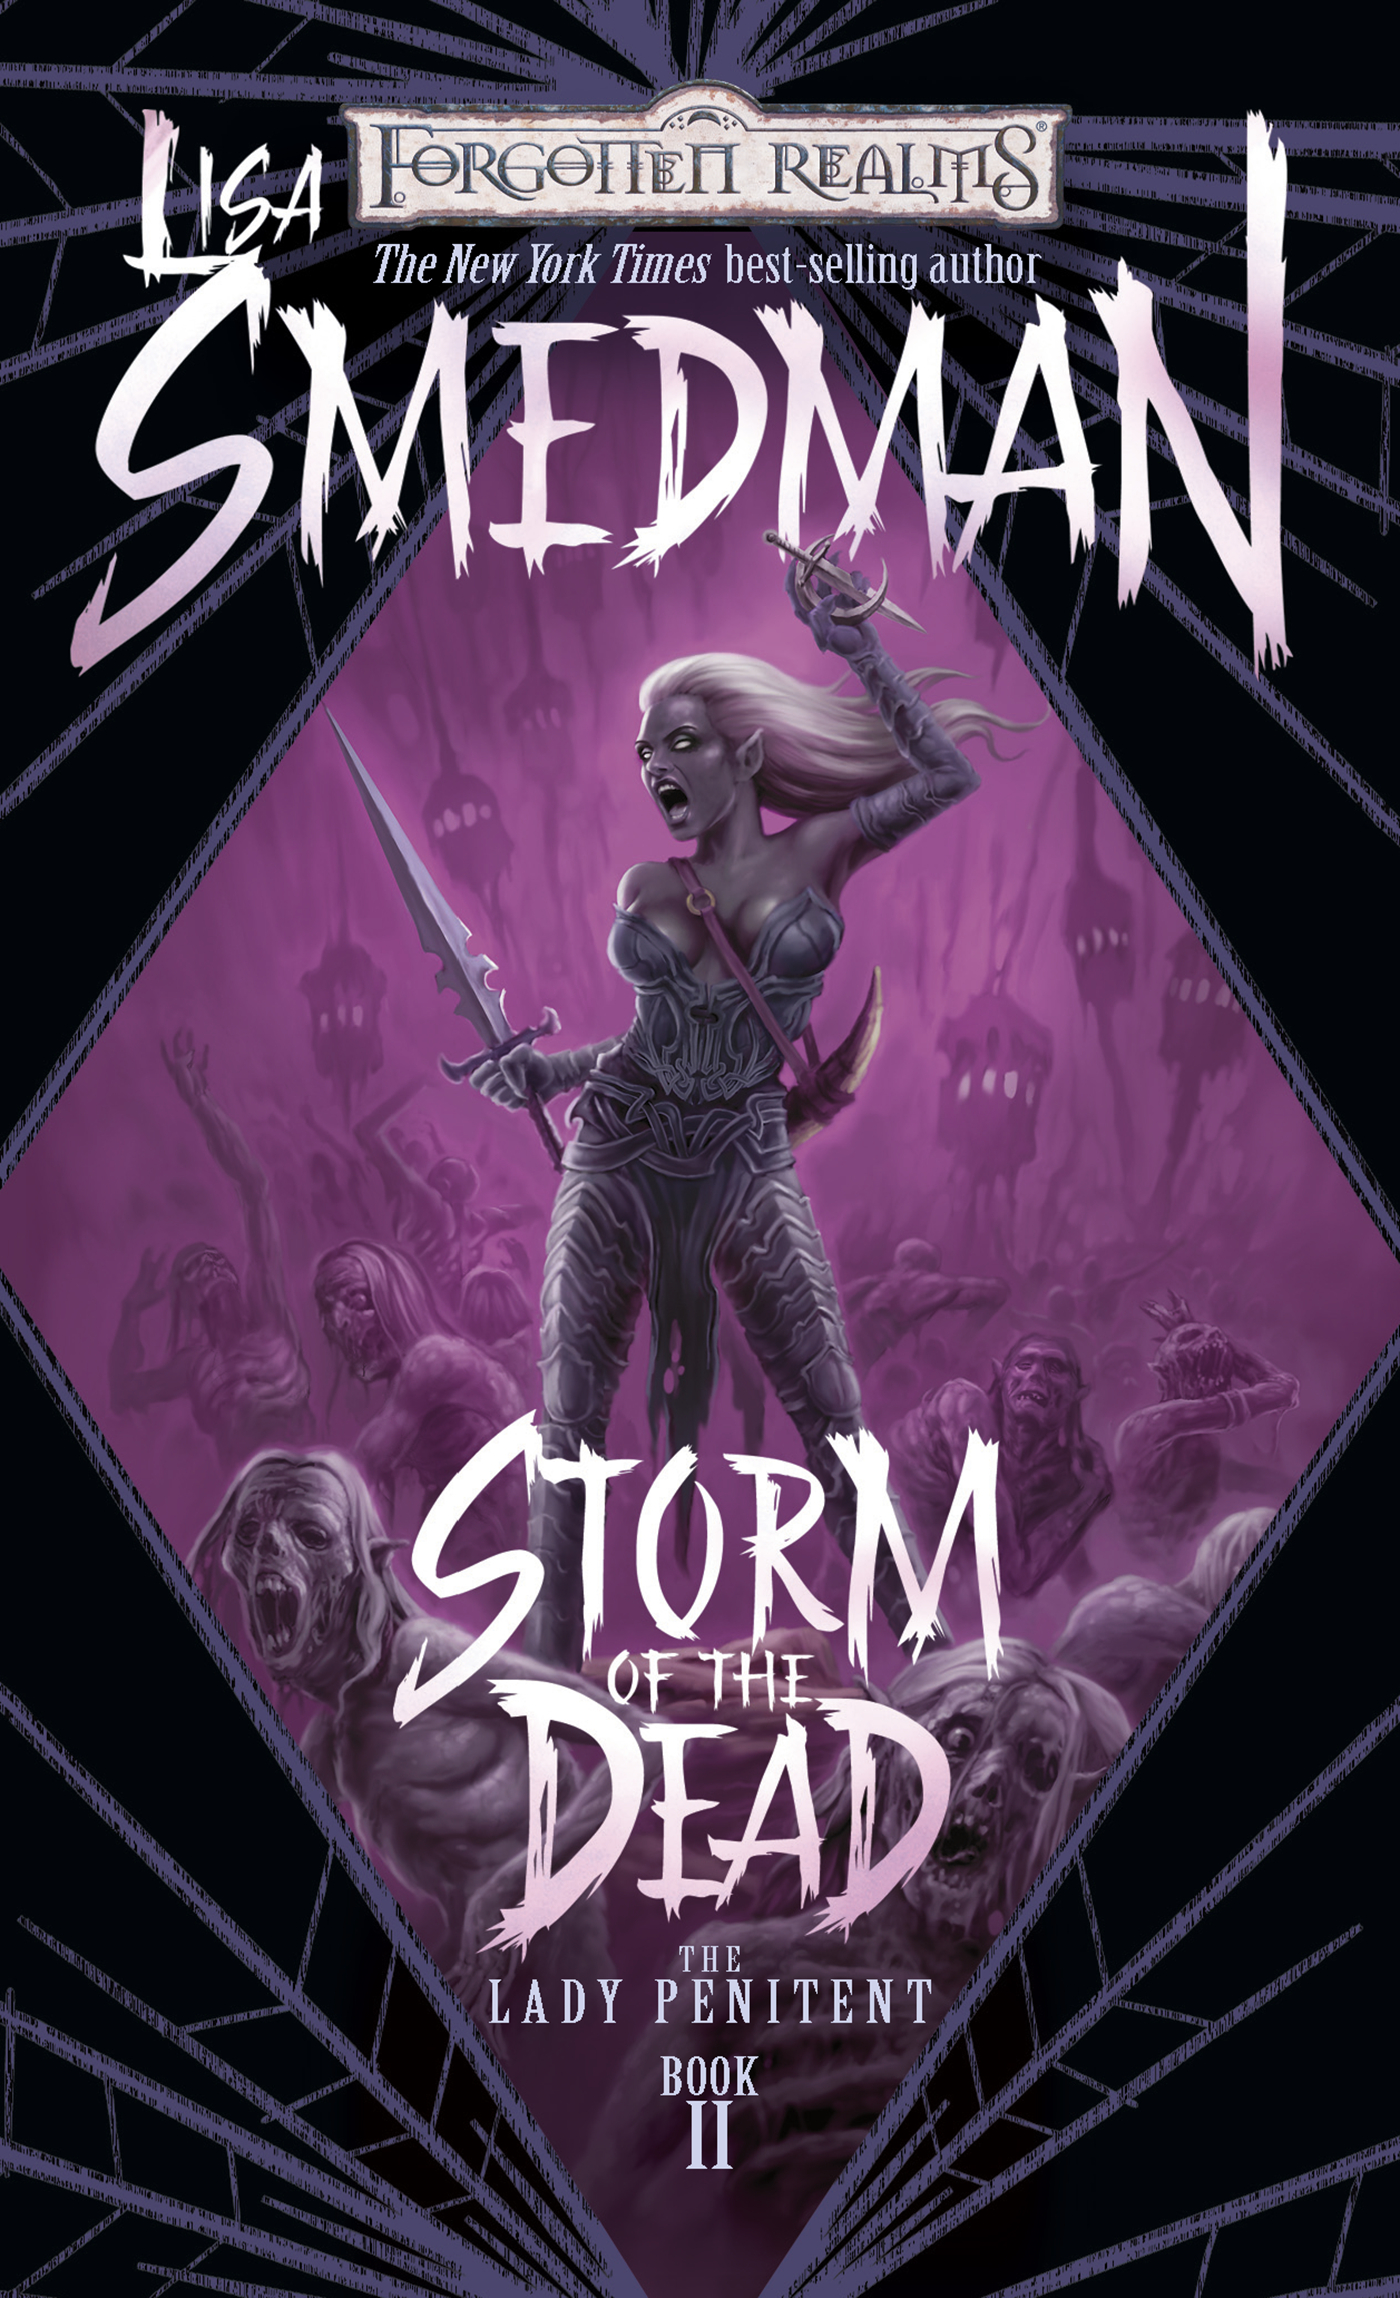 File:Storm of the Dead.jpg